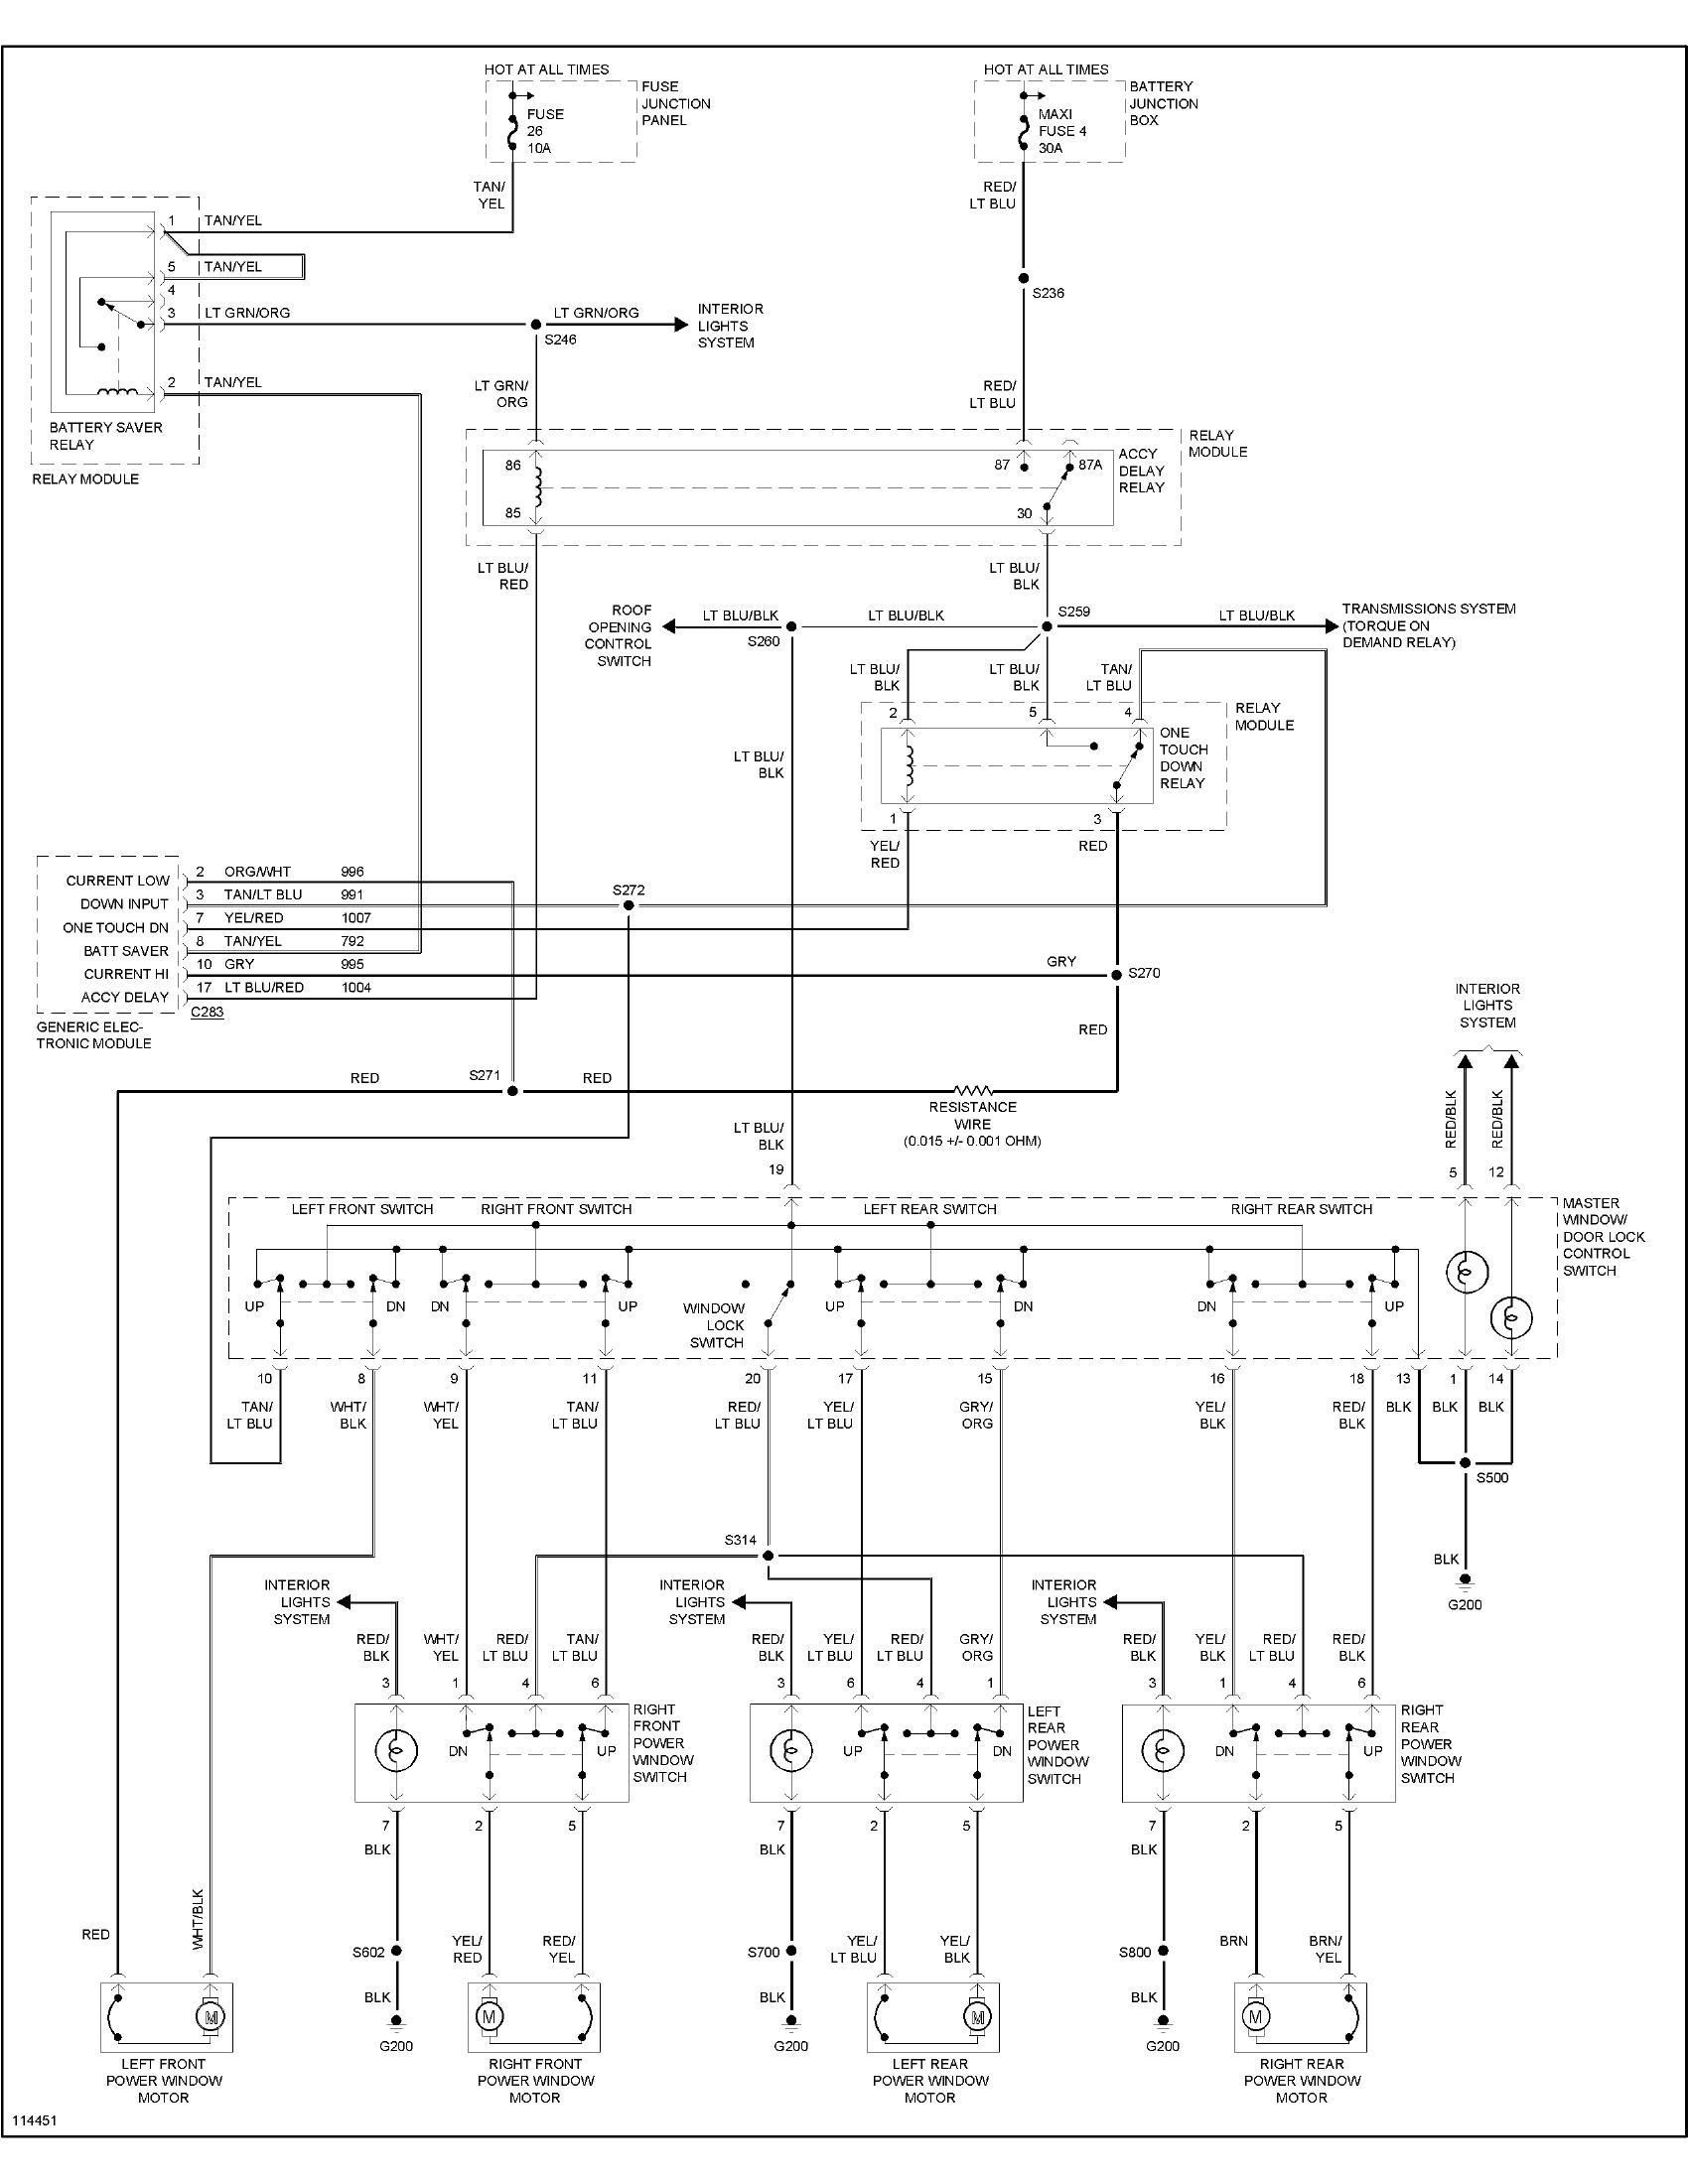 hight resolution of 2011 explorer wiring diagram wiring diagram technic diagram 1999 ford explorer engine diagram 2011 mitsubishi eclipsewrg